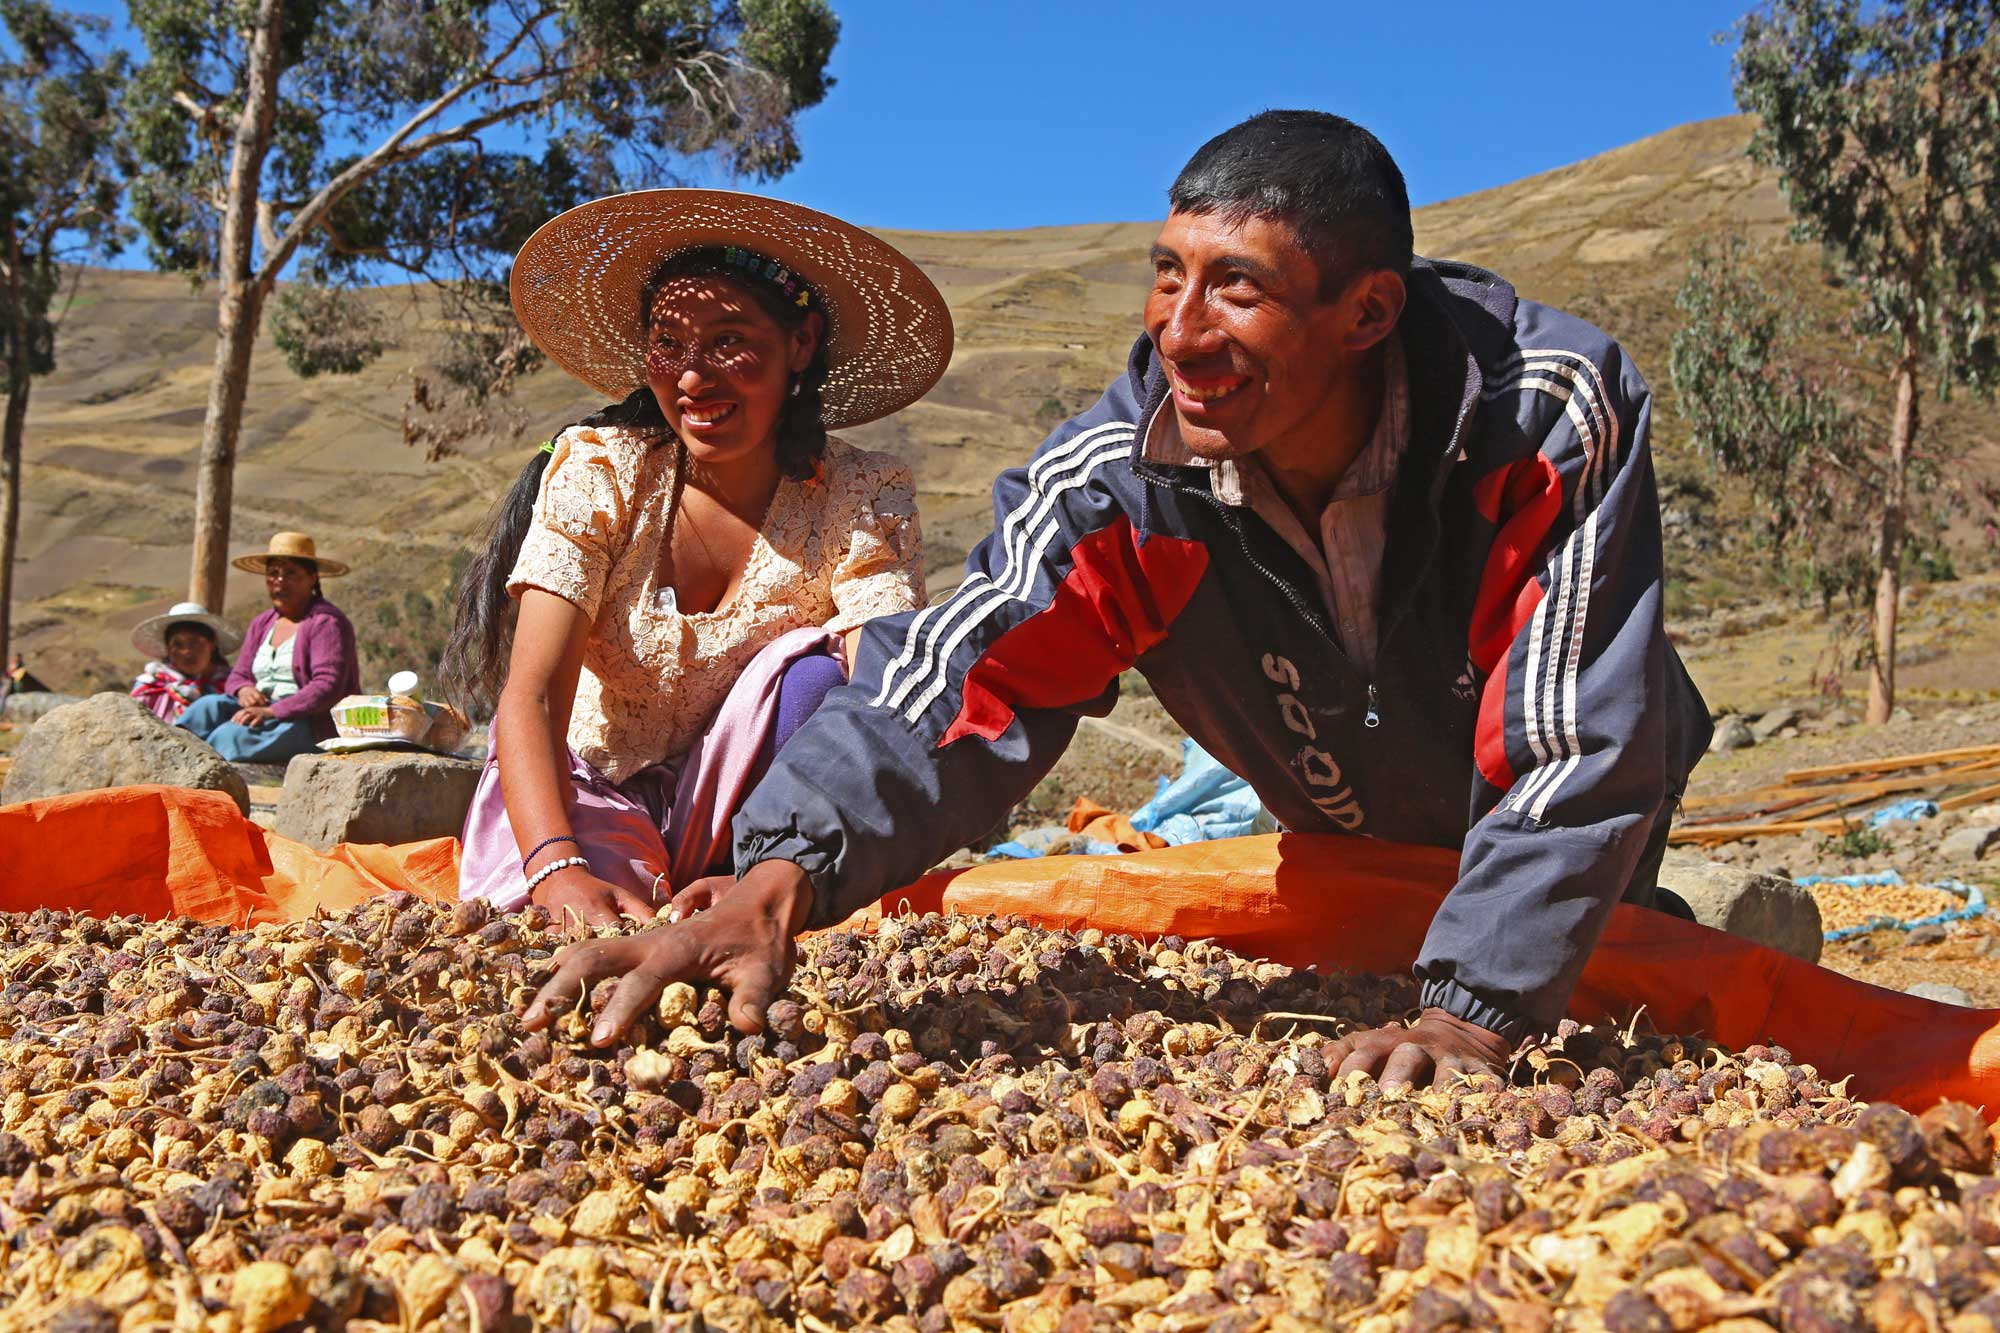 Sofia and German Pere smile as they spread out a pile of maca in the sun.